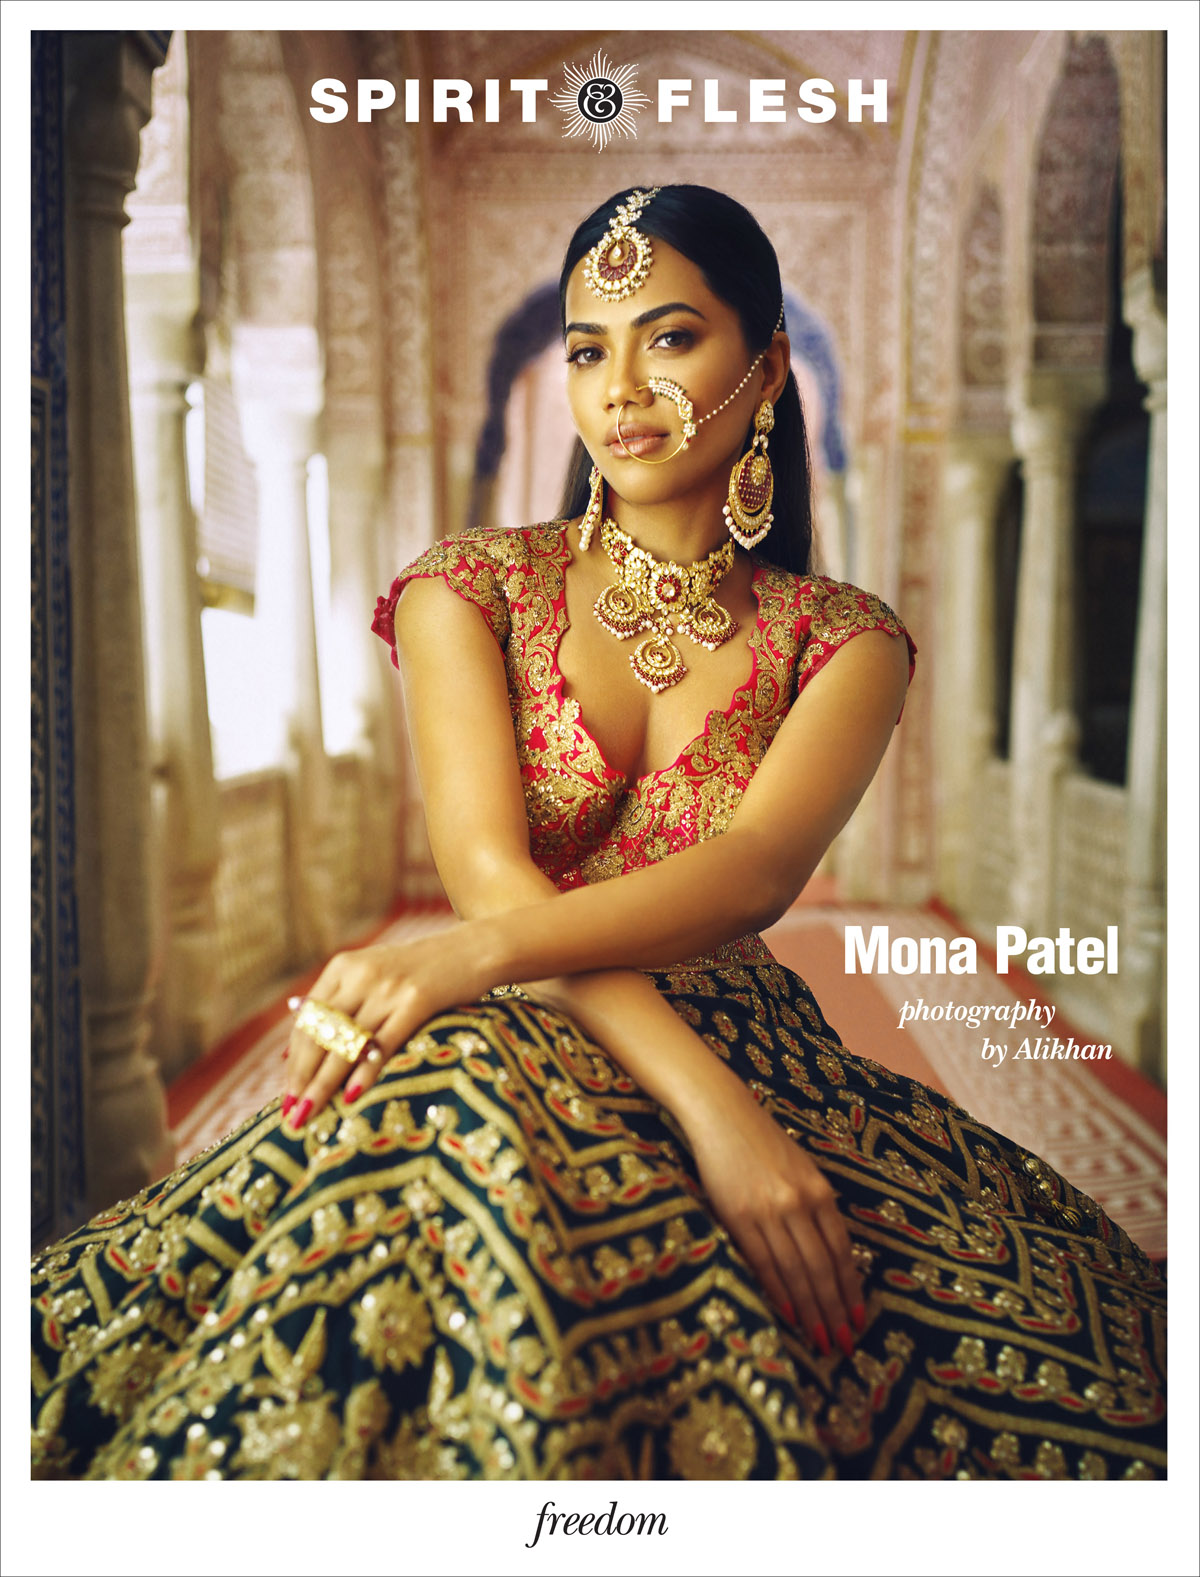 Spirit-&-Flesh-Magazine_Alikhan_Mona Patel_Child of India__1